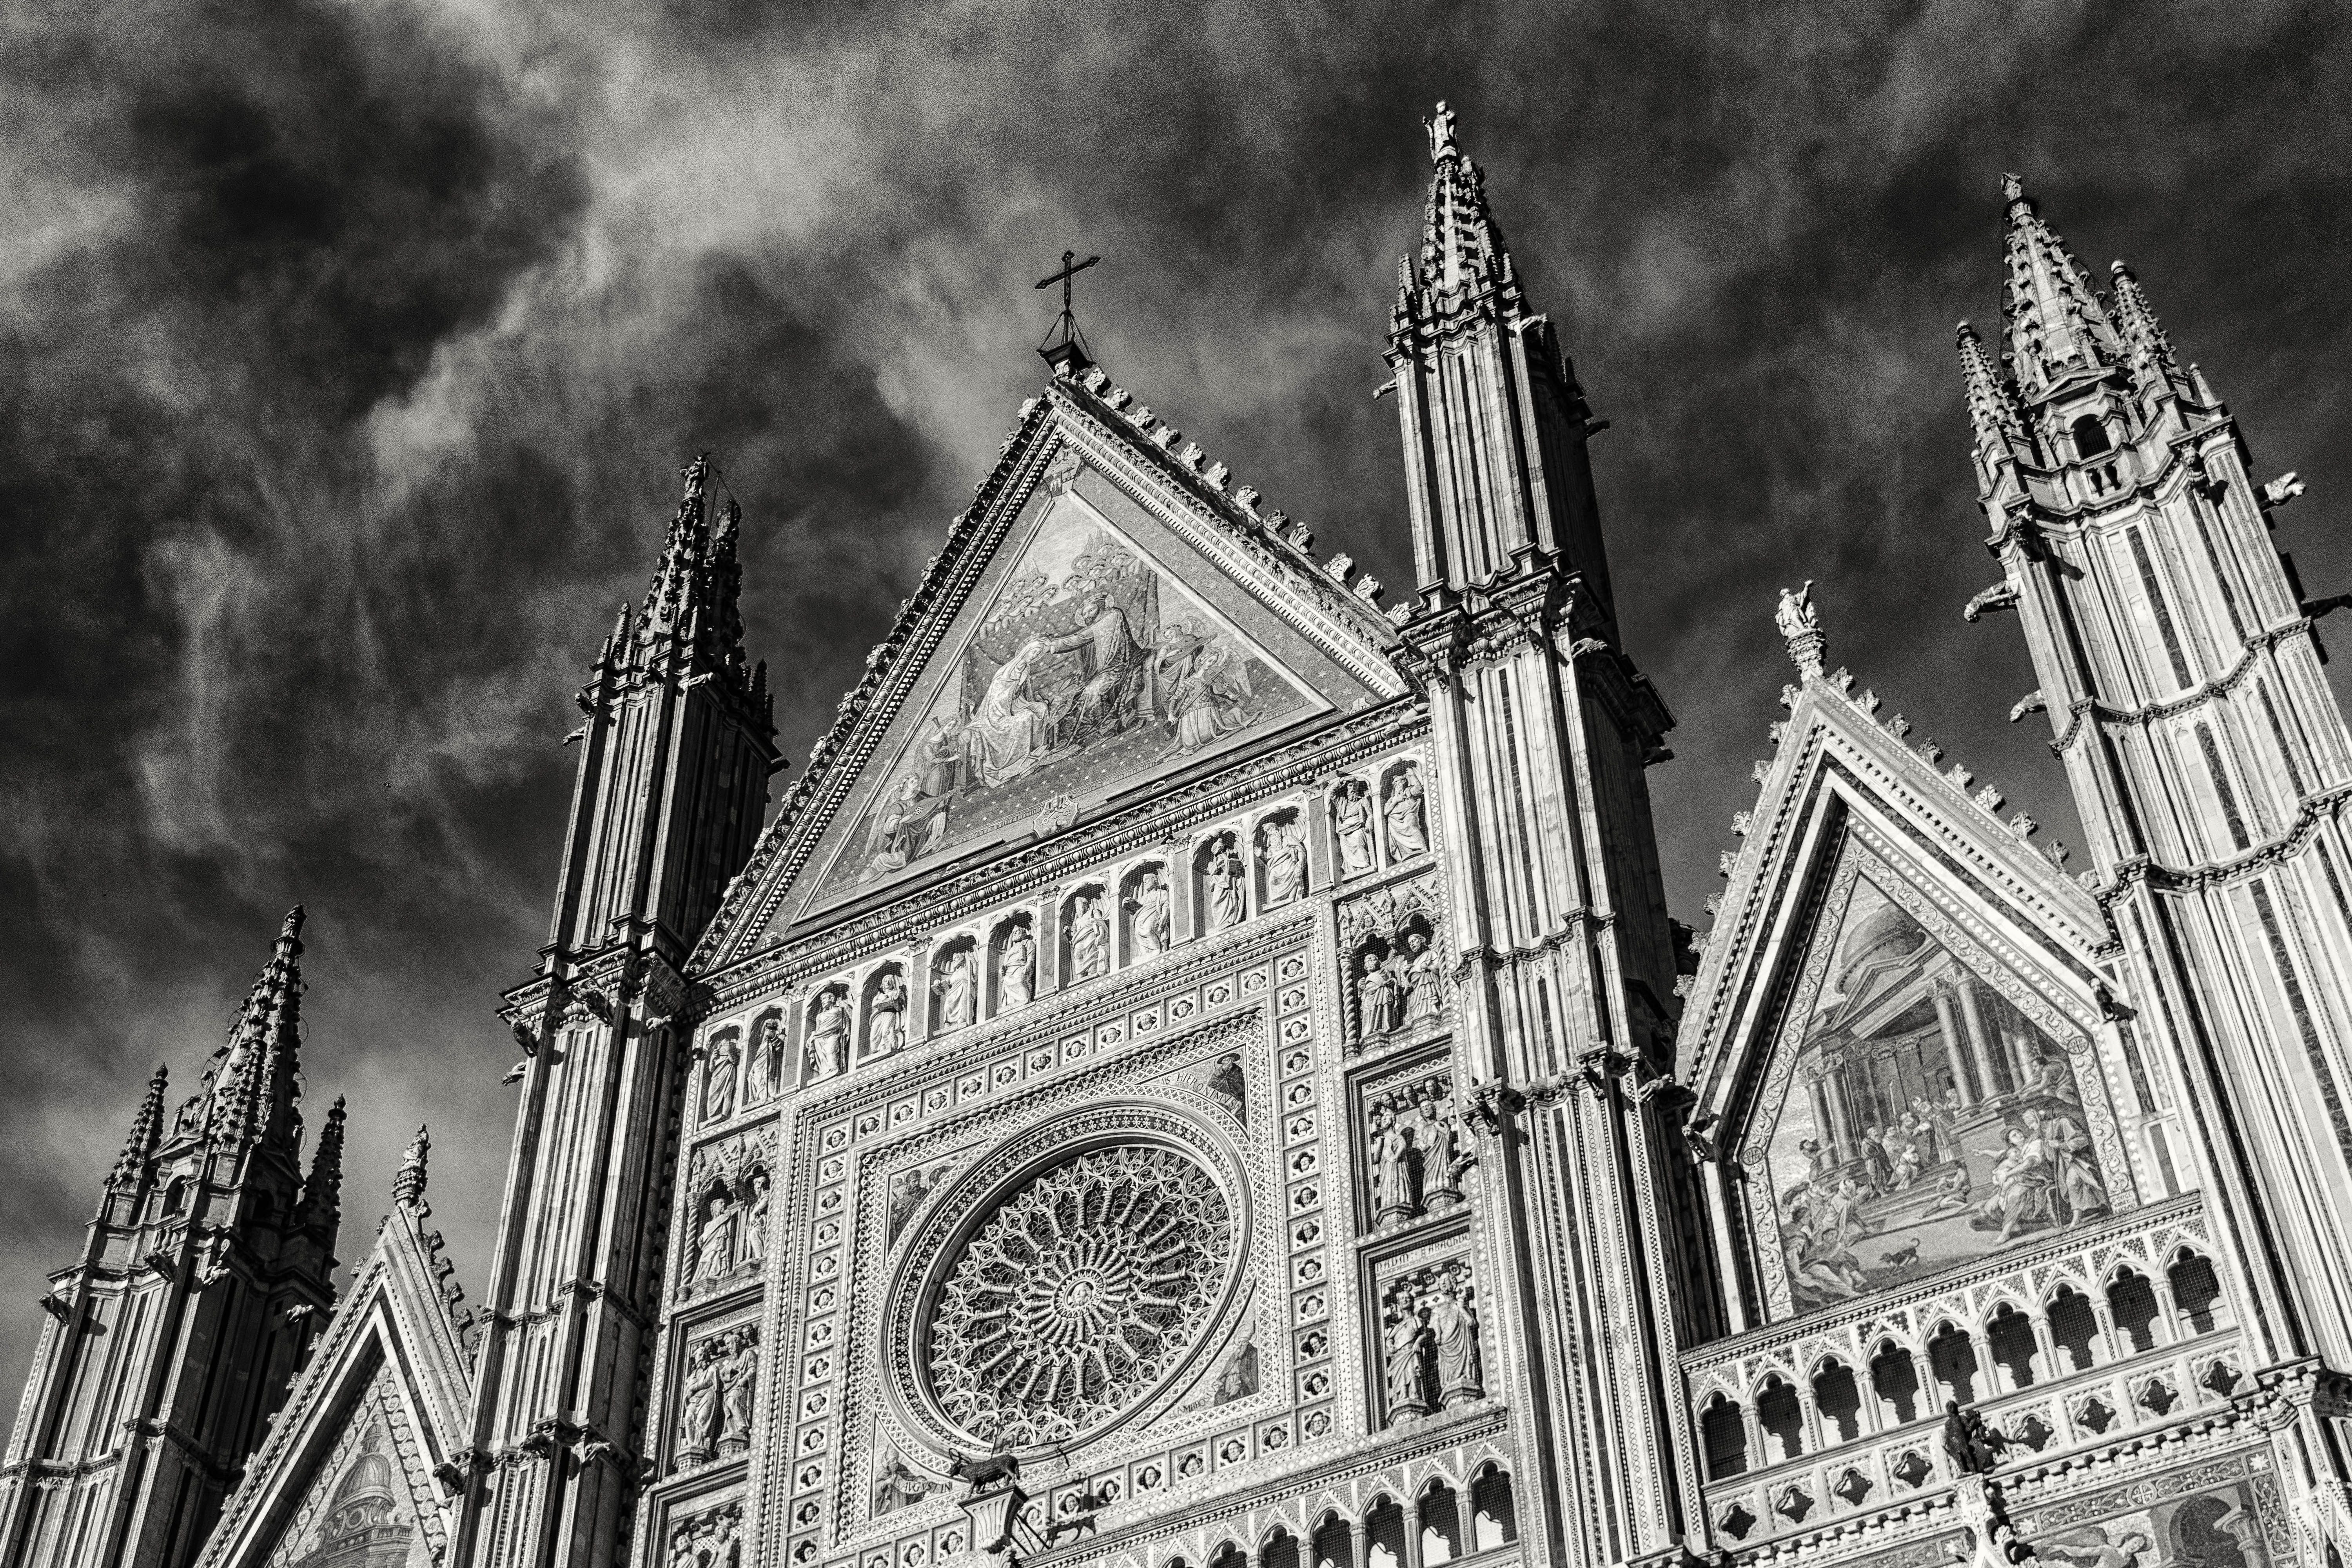 Gray Scale Church Photo, Architecture, Black-and-white, Building, Cathedral, HQ Photo